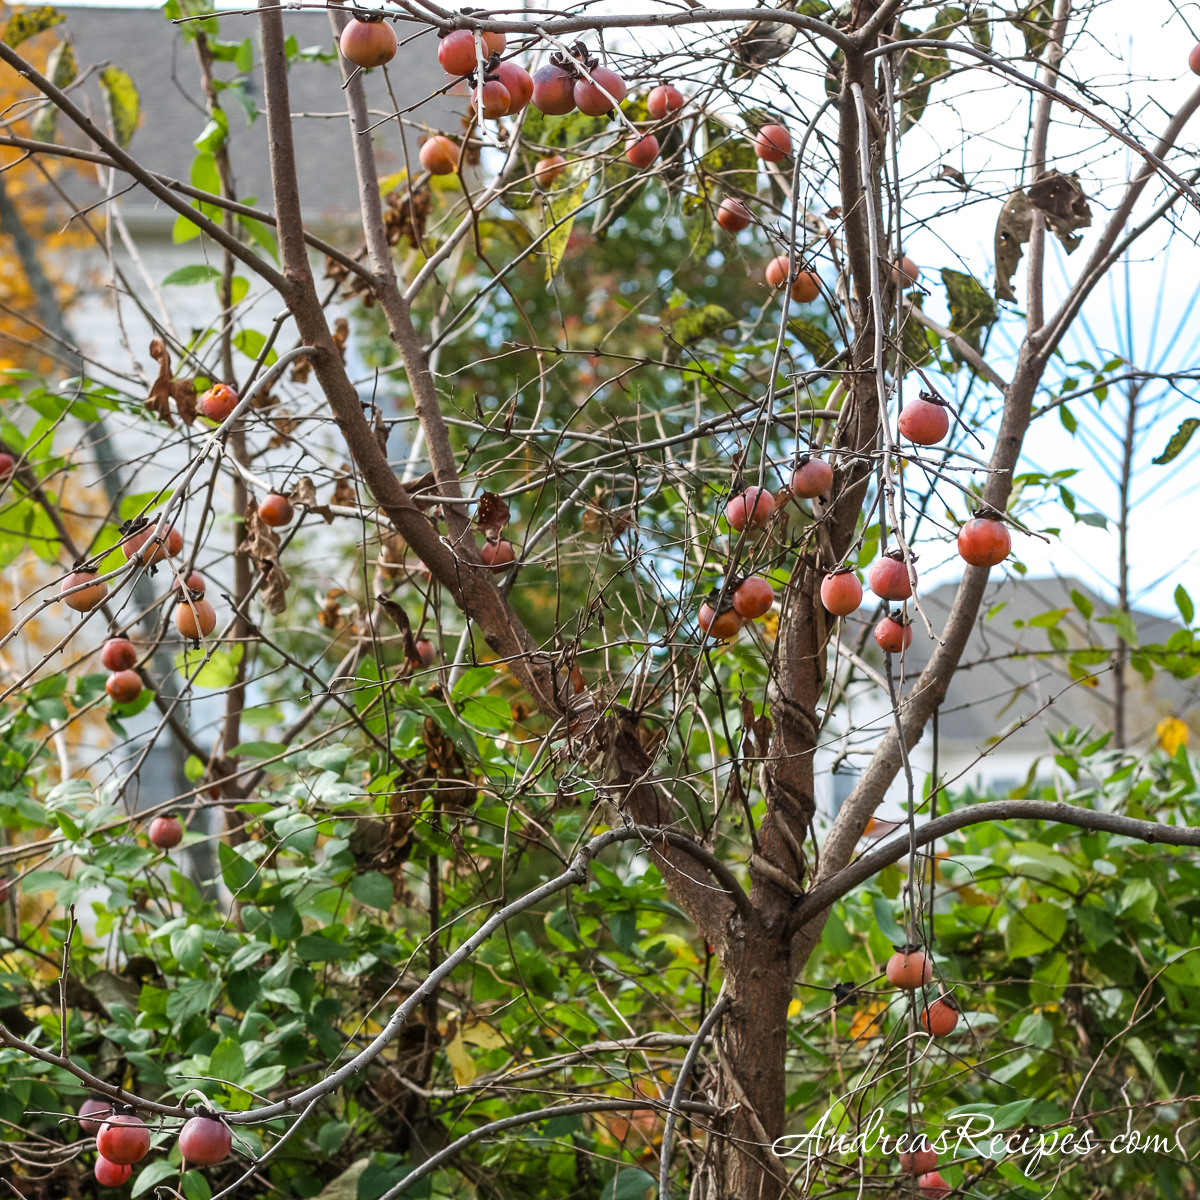 Eastern common persimmon tree with ripe fruit - Andrea Meyers